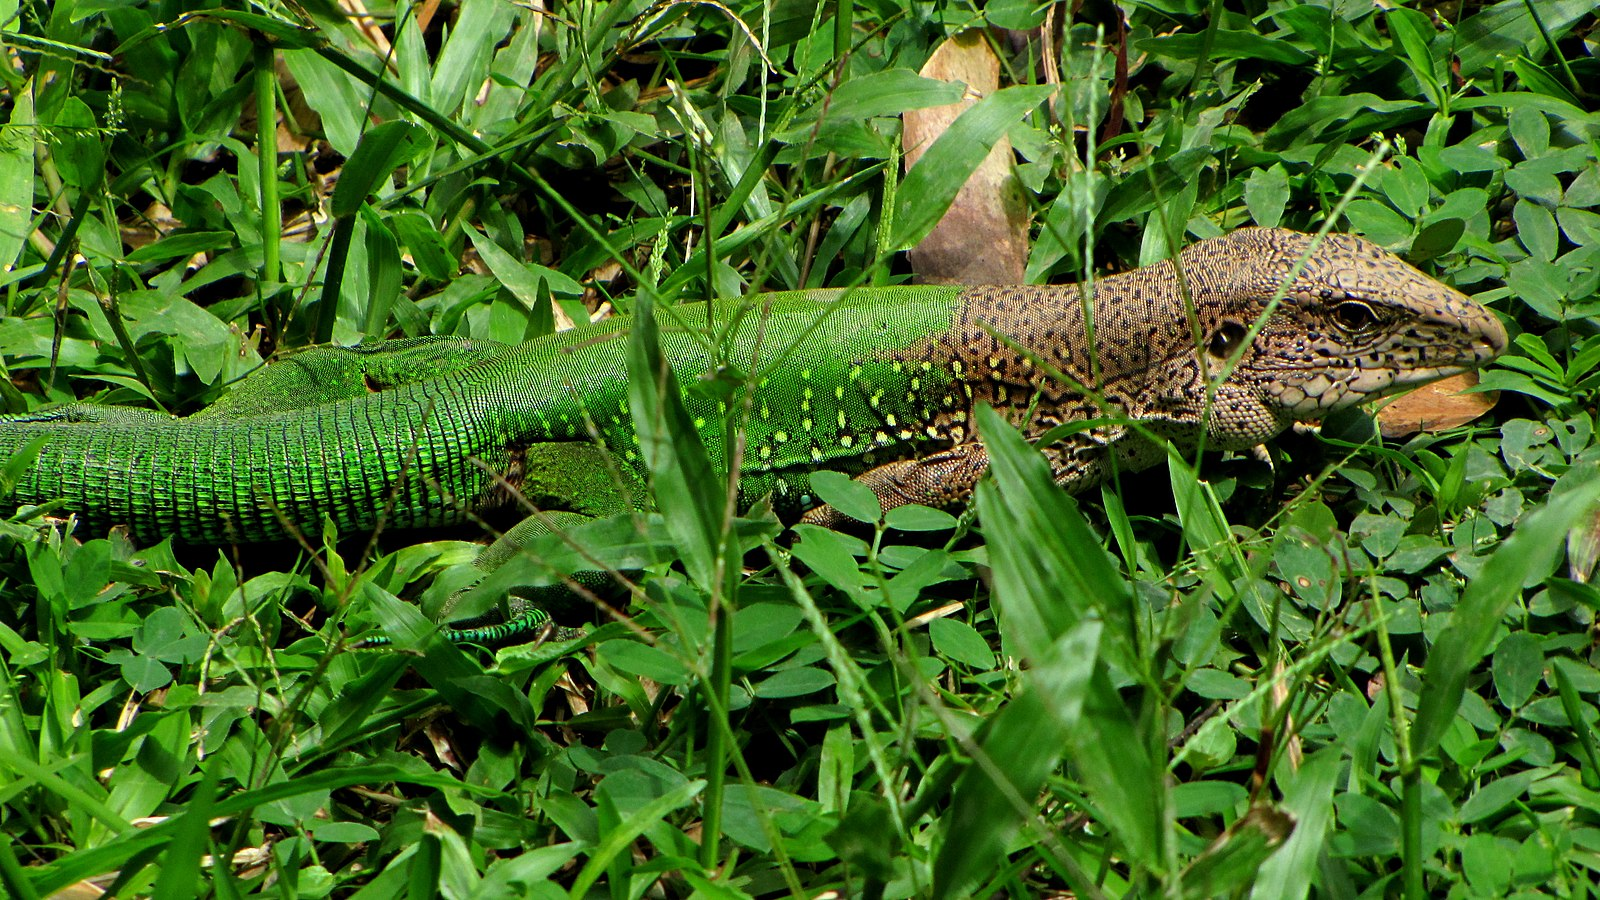 Amazon rainforest reptiles